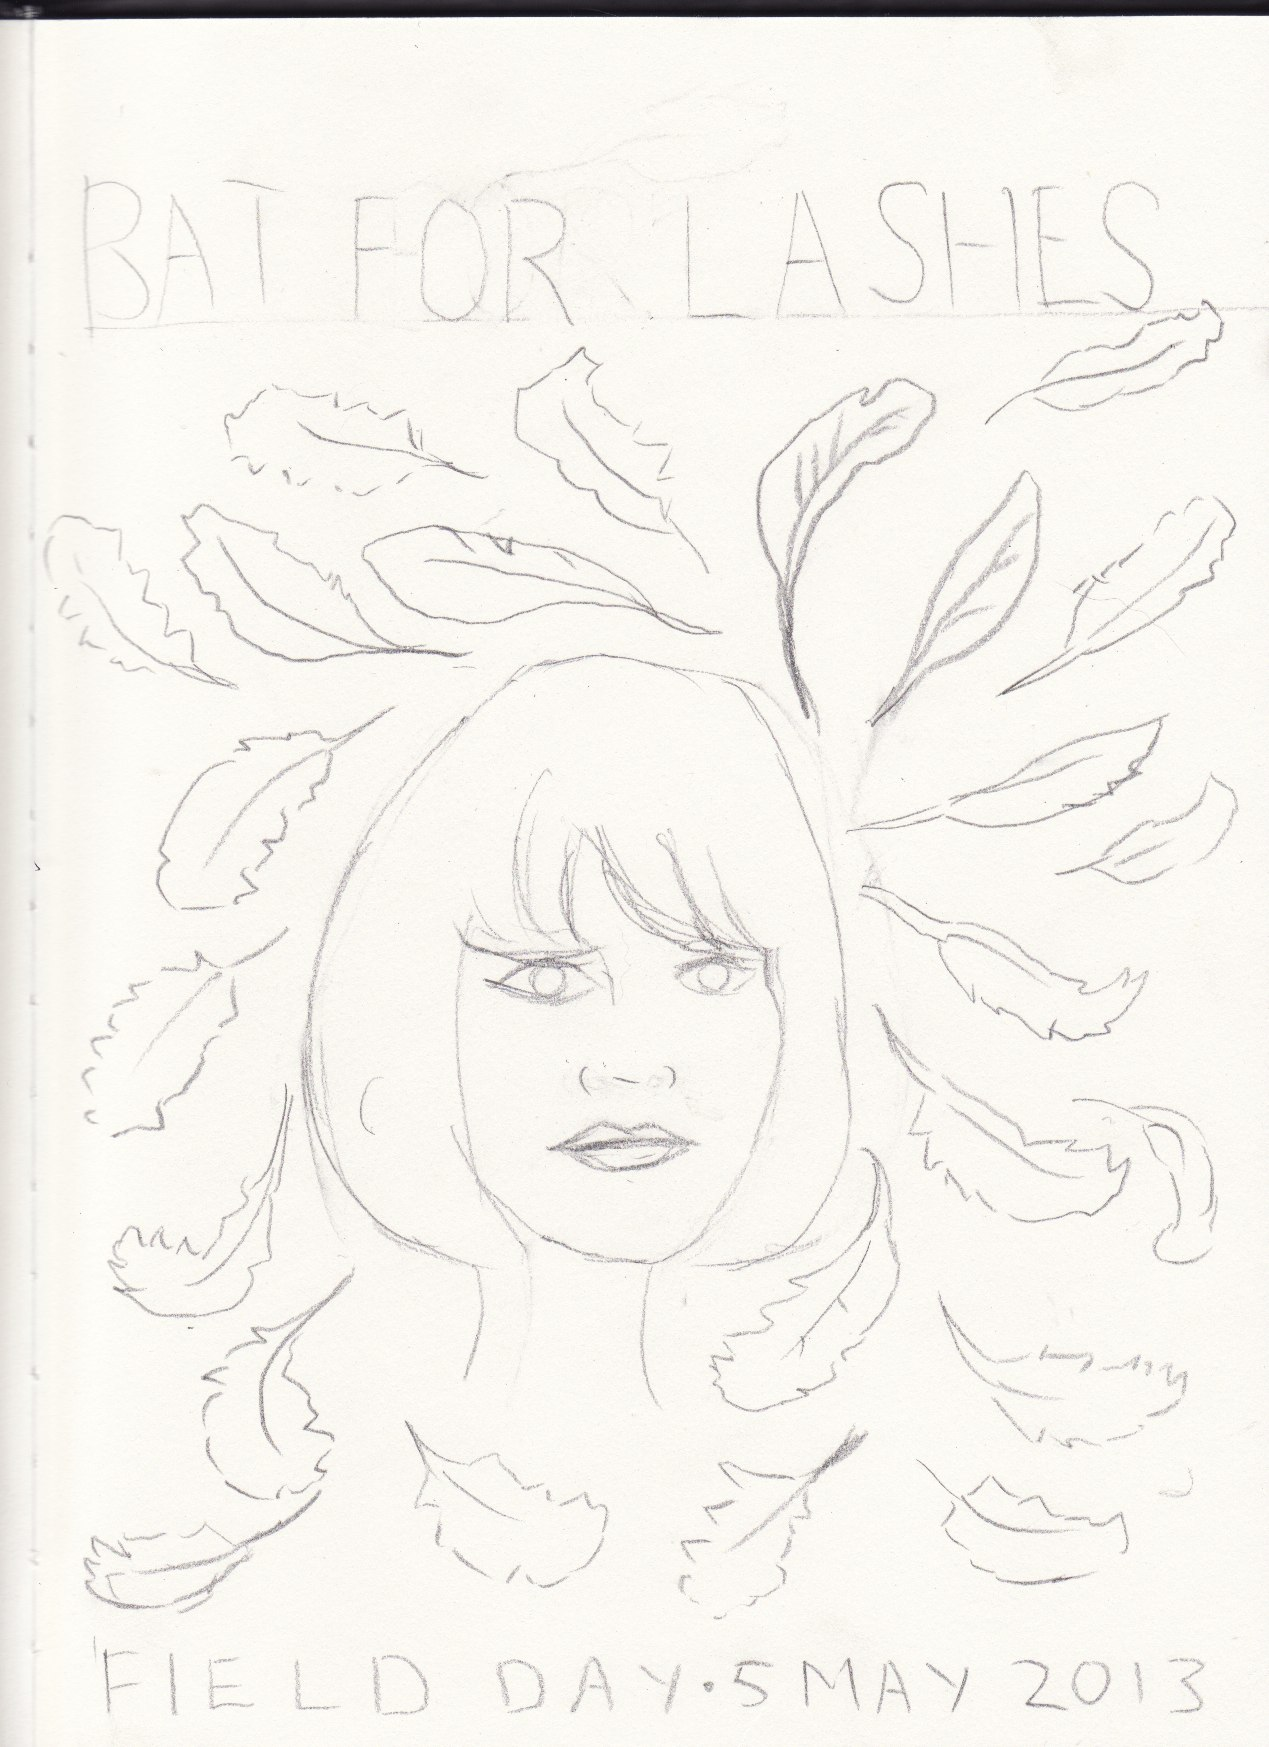 Bat for Lashes - Field day 2013 - image 6 - student project